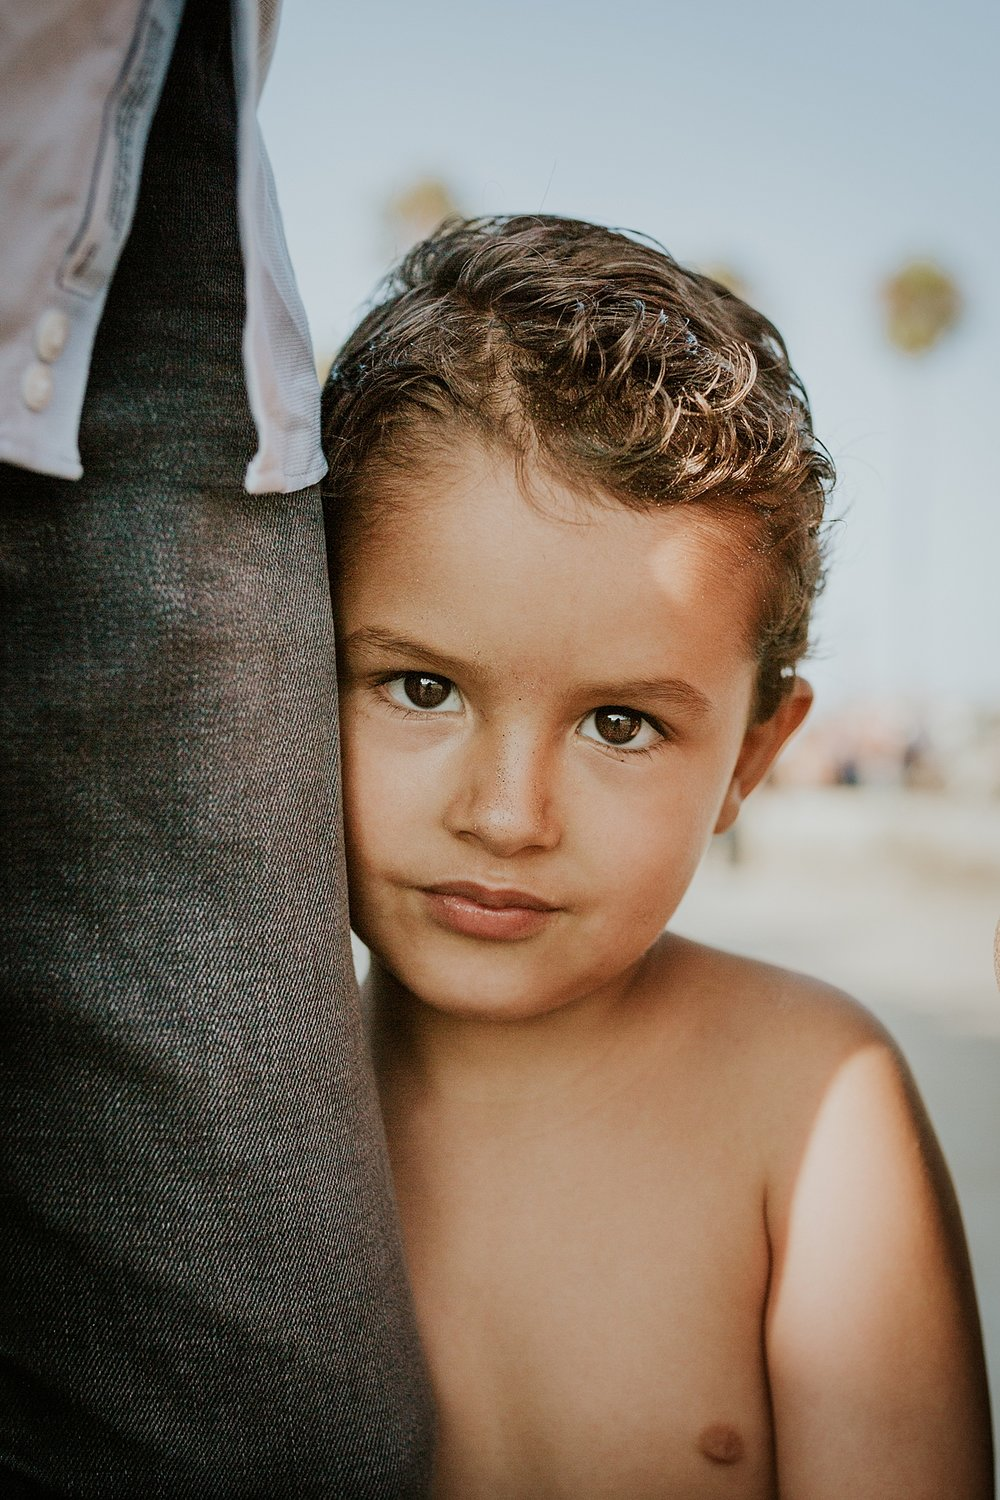 Orange County family photographer. Portrait of young boy as he hugs his dad's legs during outdoor family photo session at Huntington Beach California